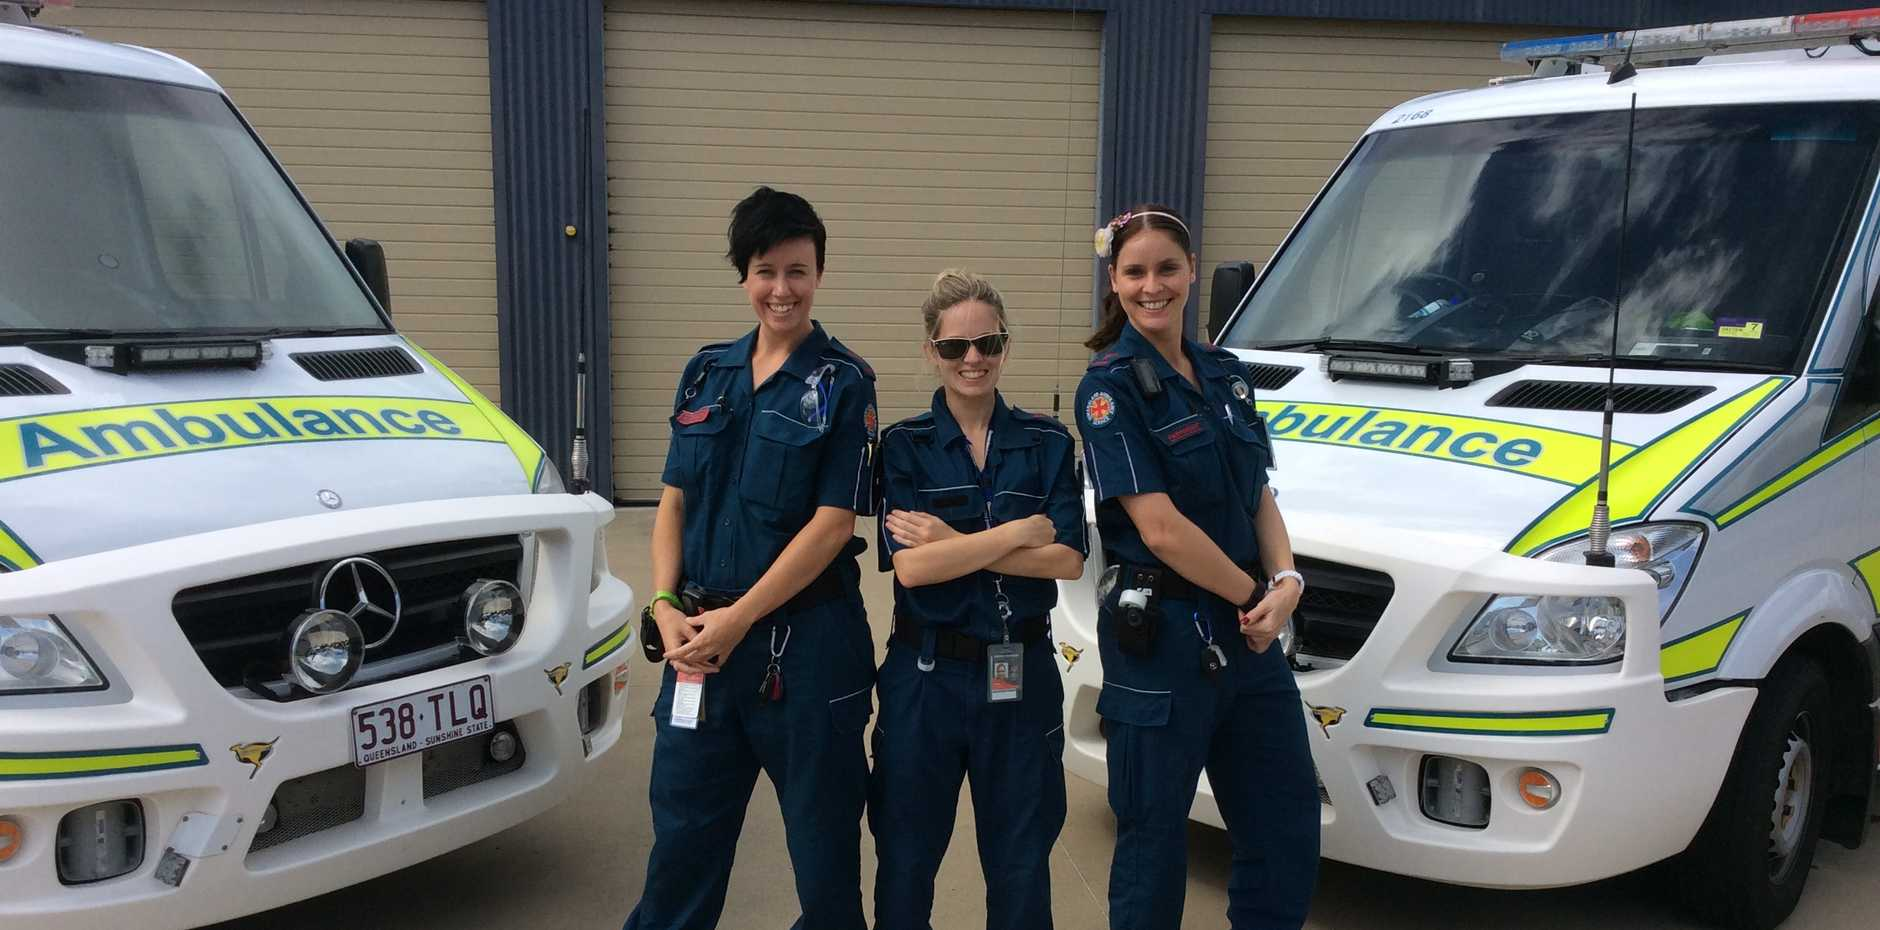 This weekend, South Mackay Ambulance Station is holding an open day and is inviting locals to come along.